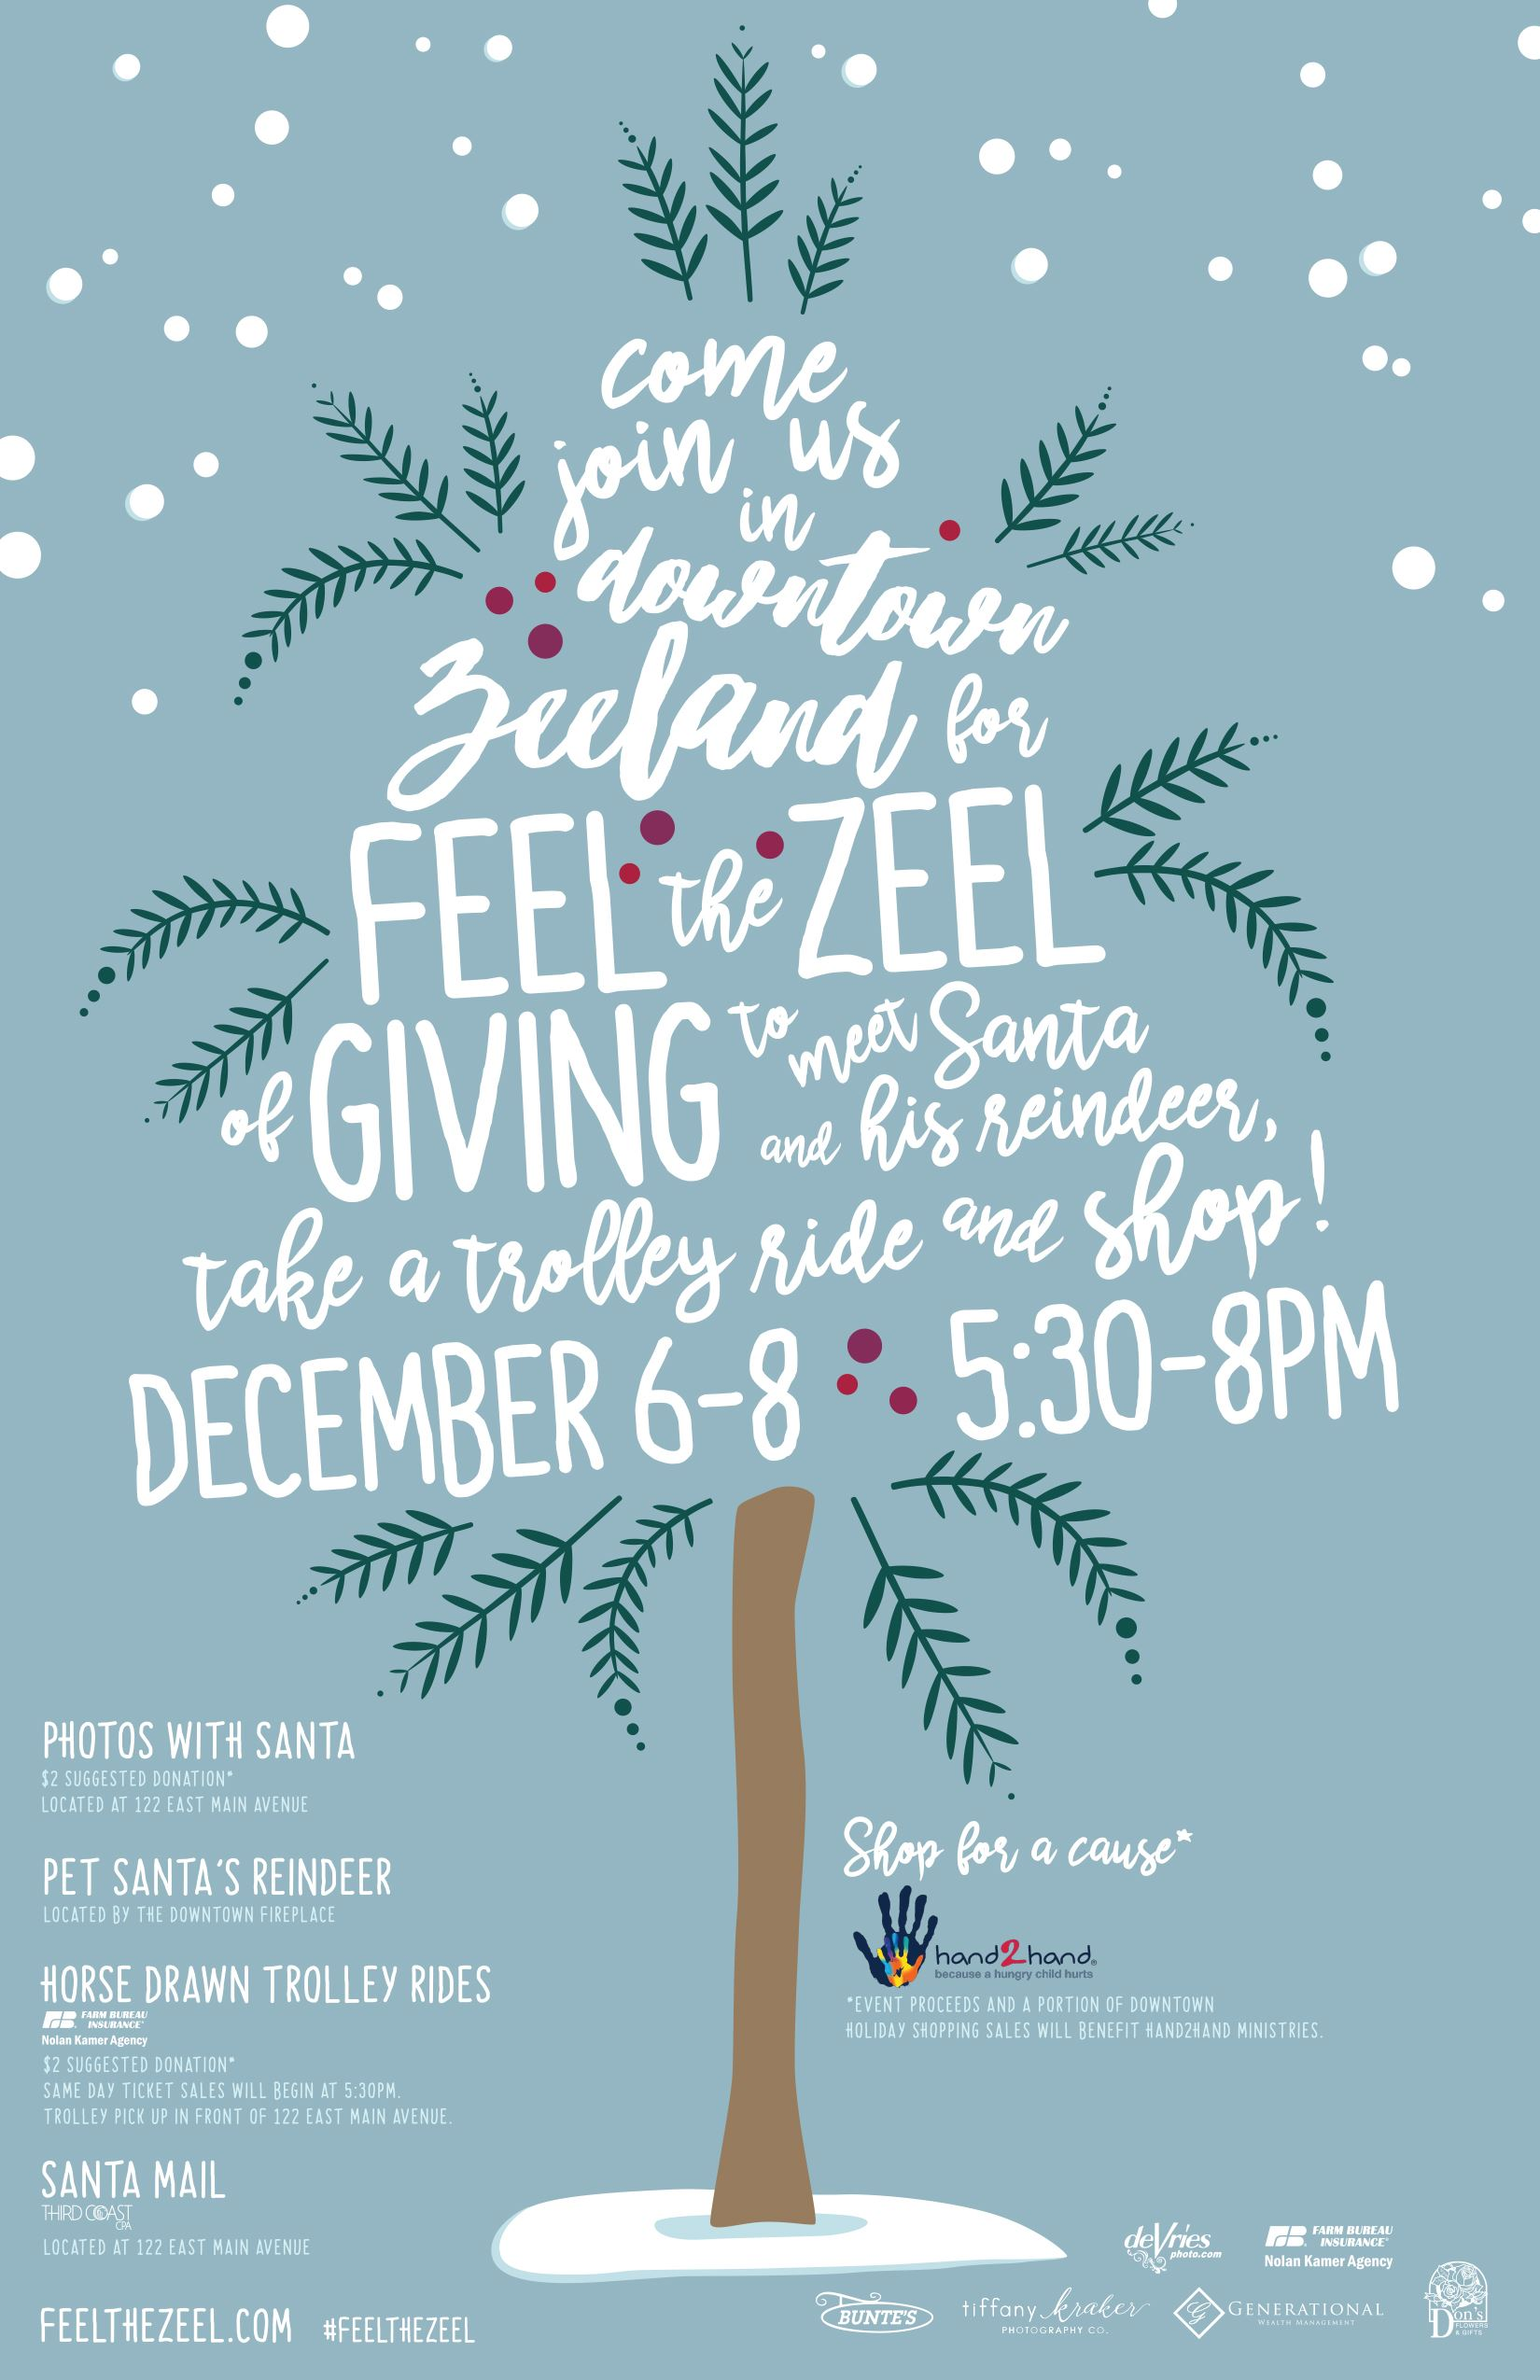 2017 feel the zeel of giving poster